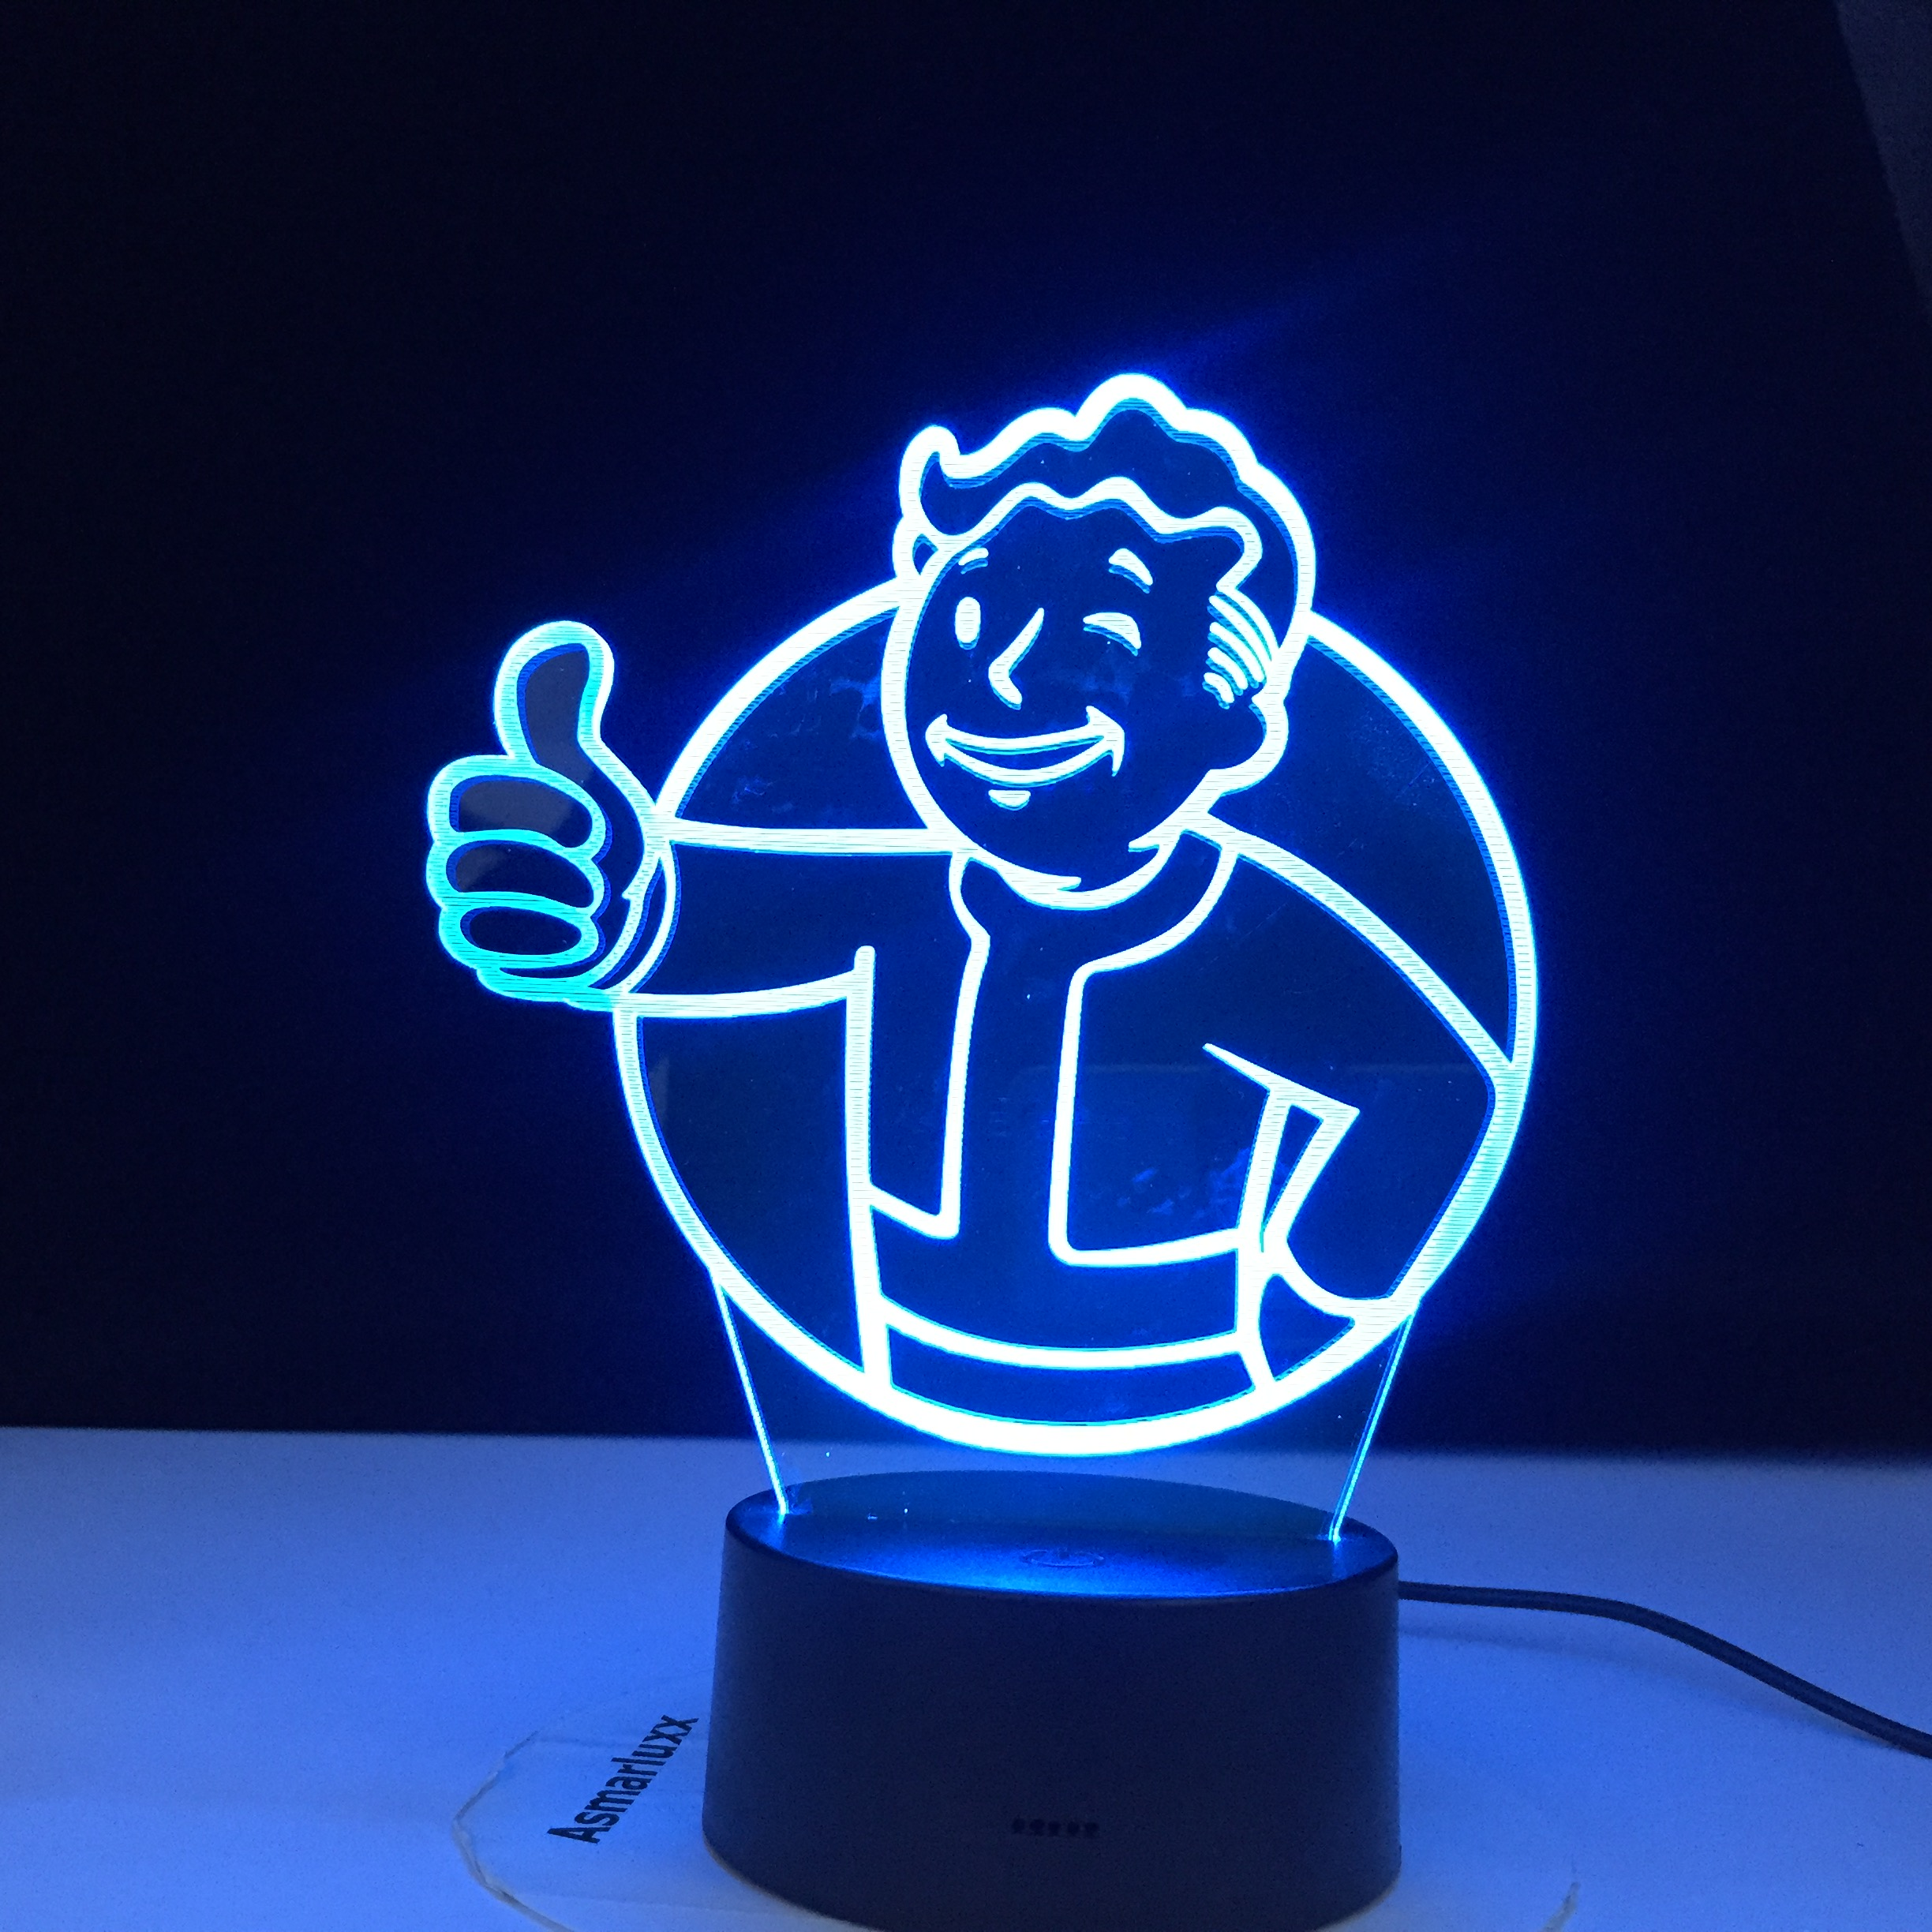 Game Fallout Shelter Logo 3D Led Night Light for Kids Child Bedroom Decoration Cool Event Nightlight Colorful Usb Table Lamp|LED Night Lights| |  - title=